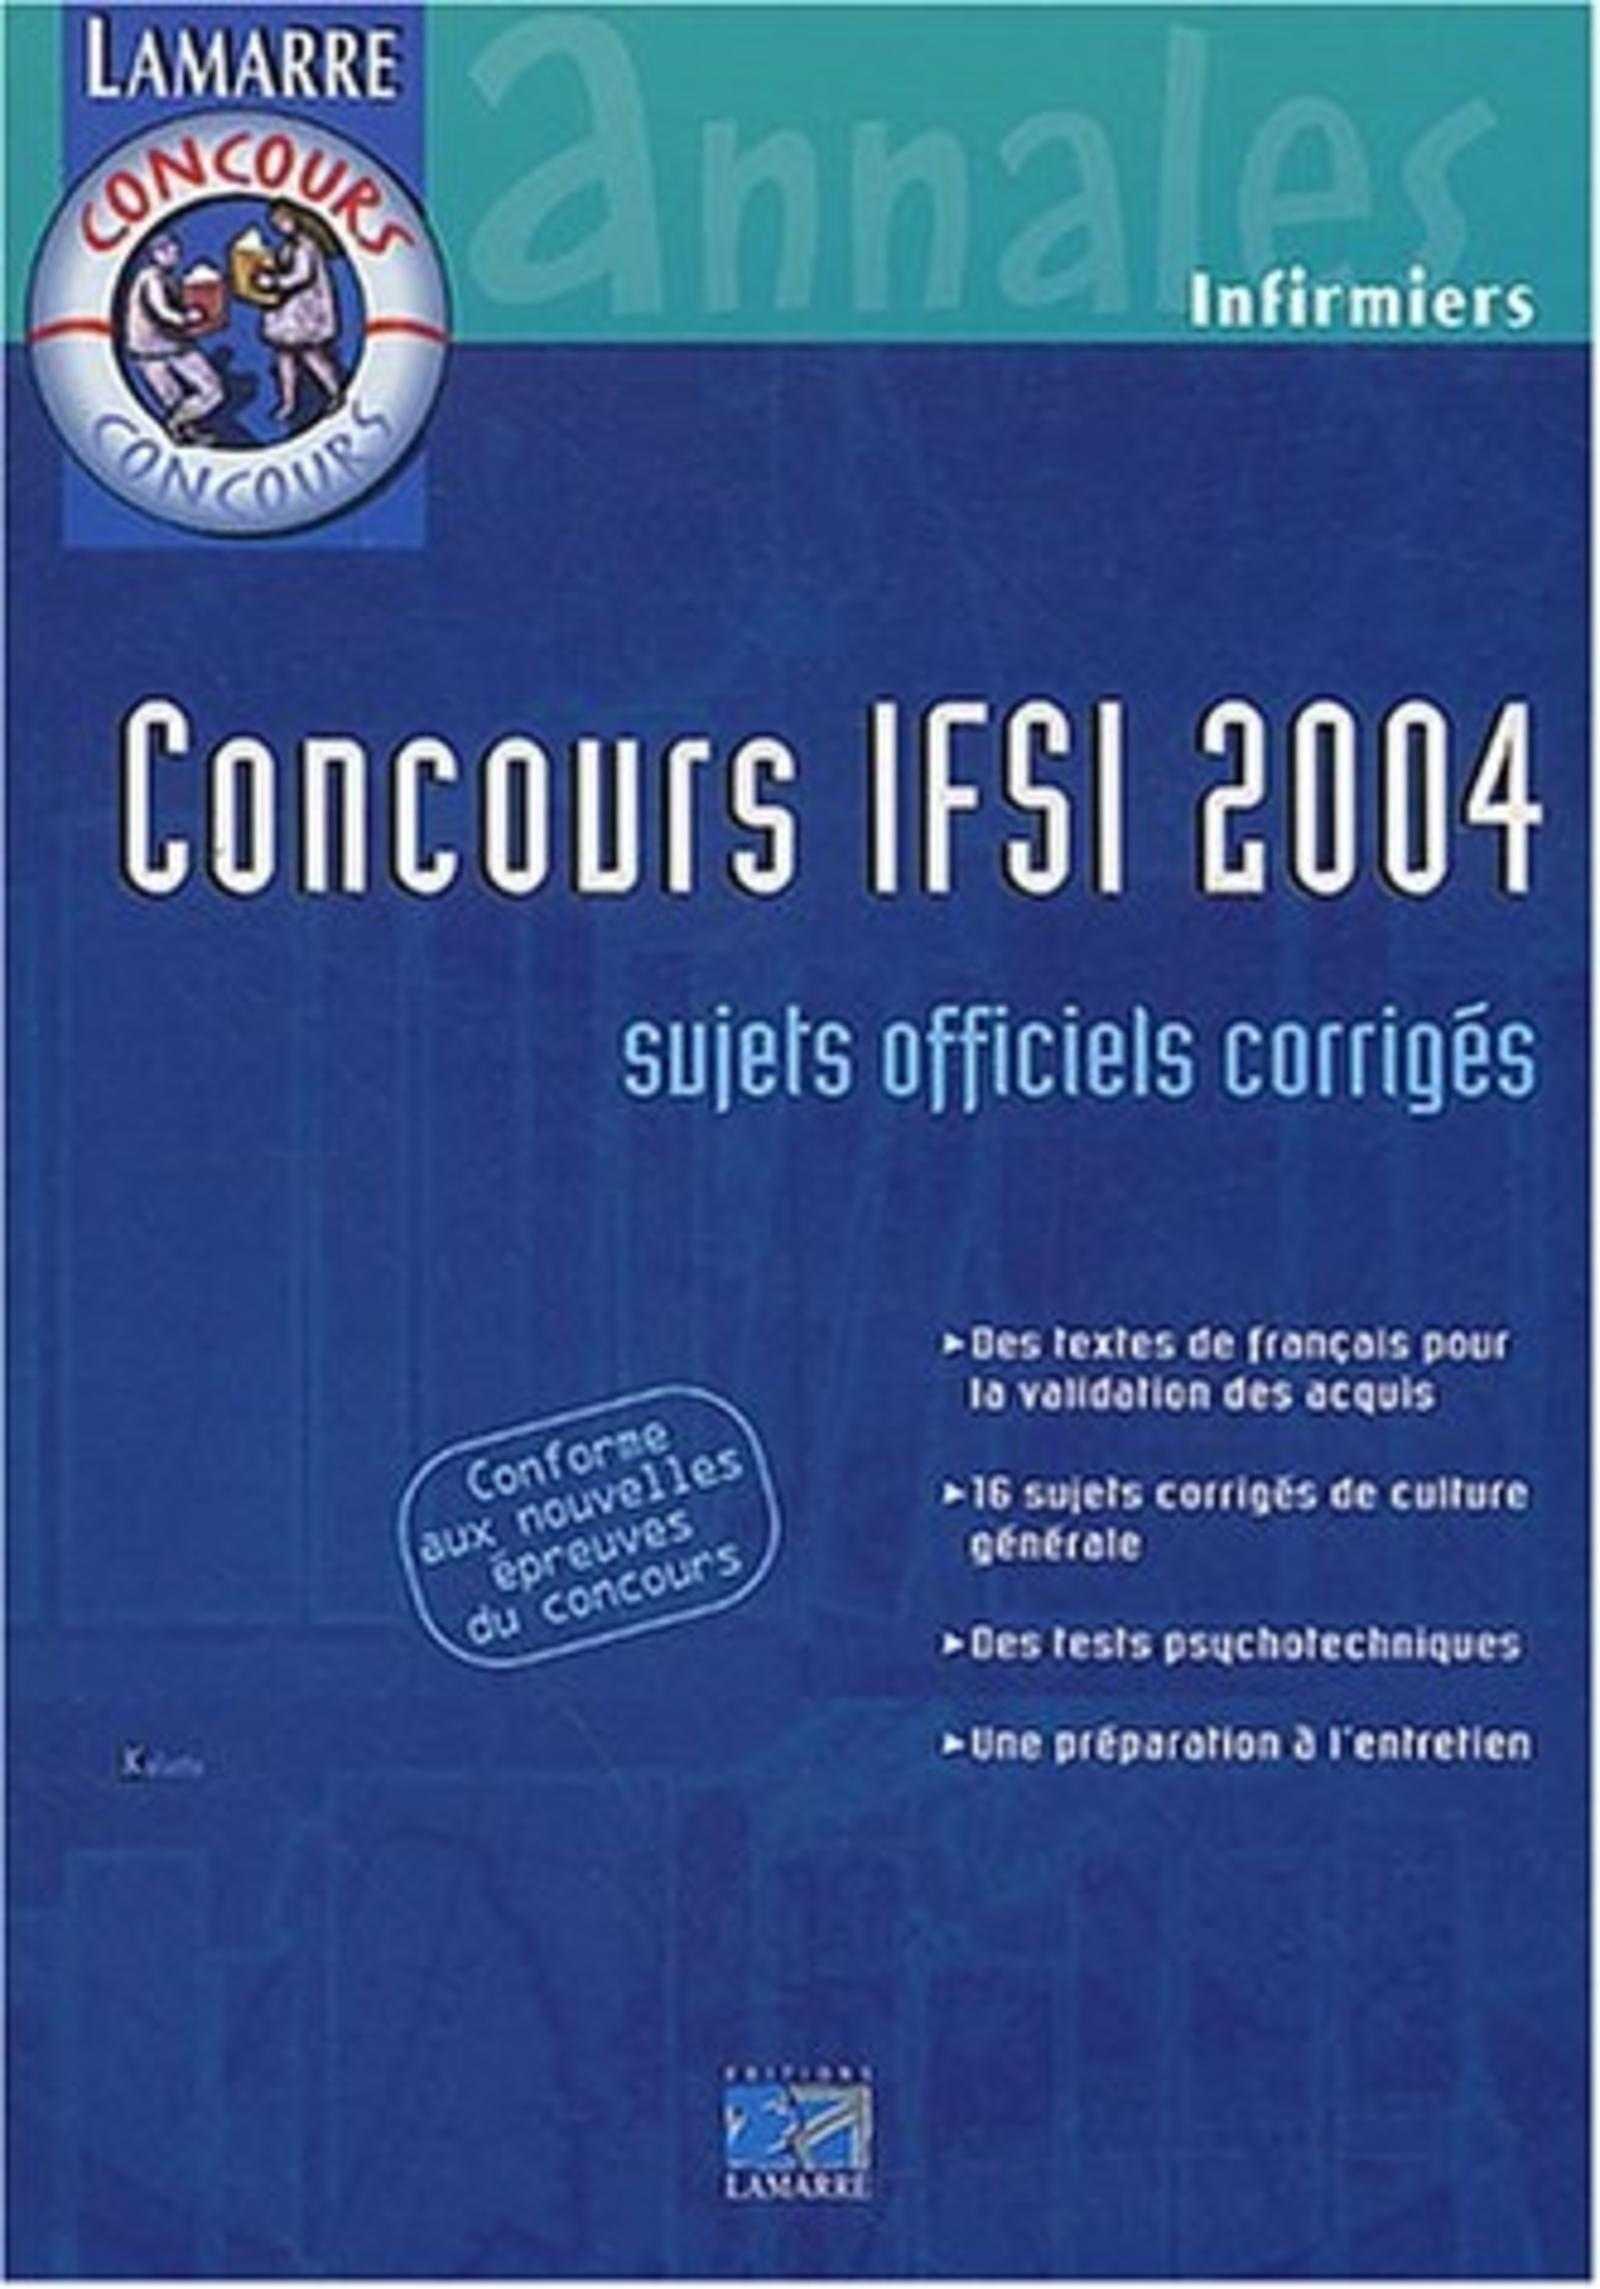 CONCOURS IFSI 2004 - INFIRMIERS